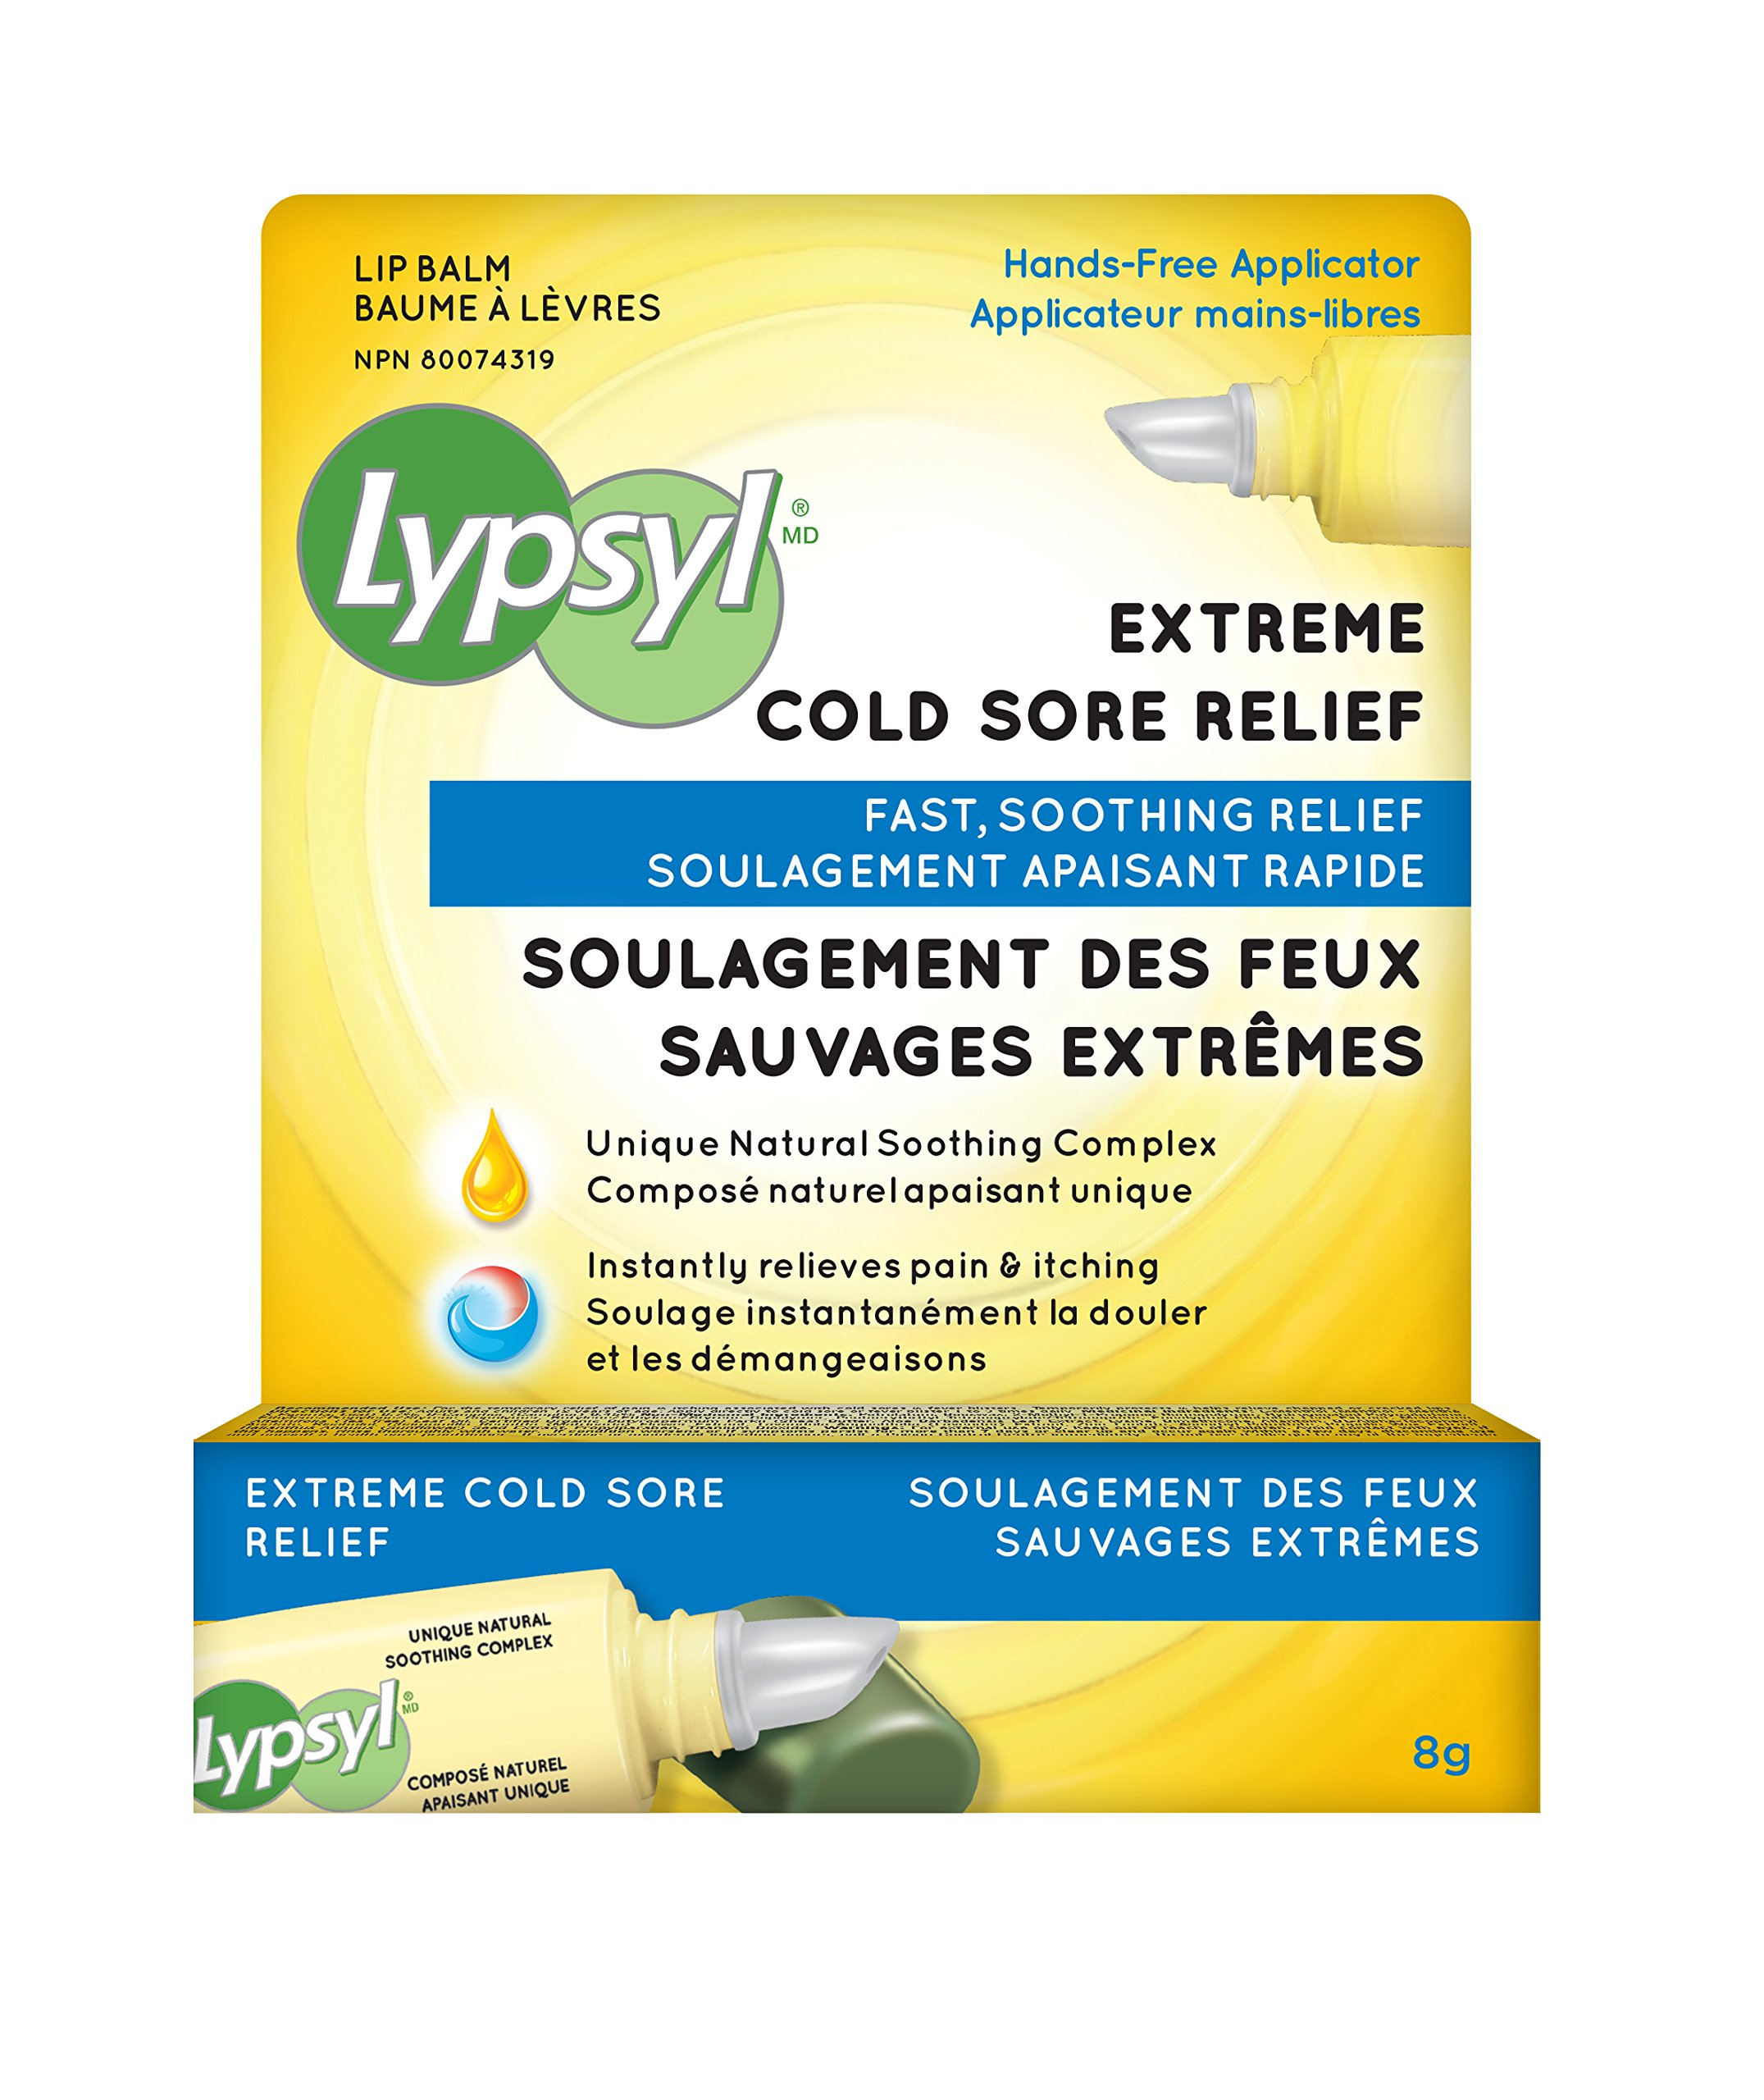 Lypsyl Extreme Cold Sore Relief 2 Tubes by Lypsyl (Image #1)